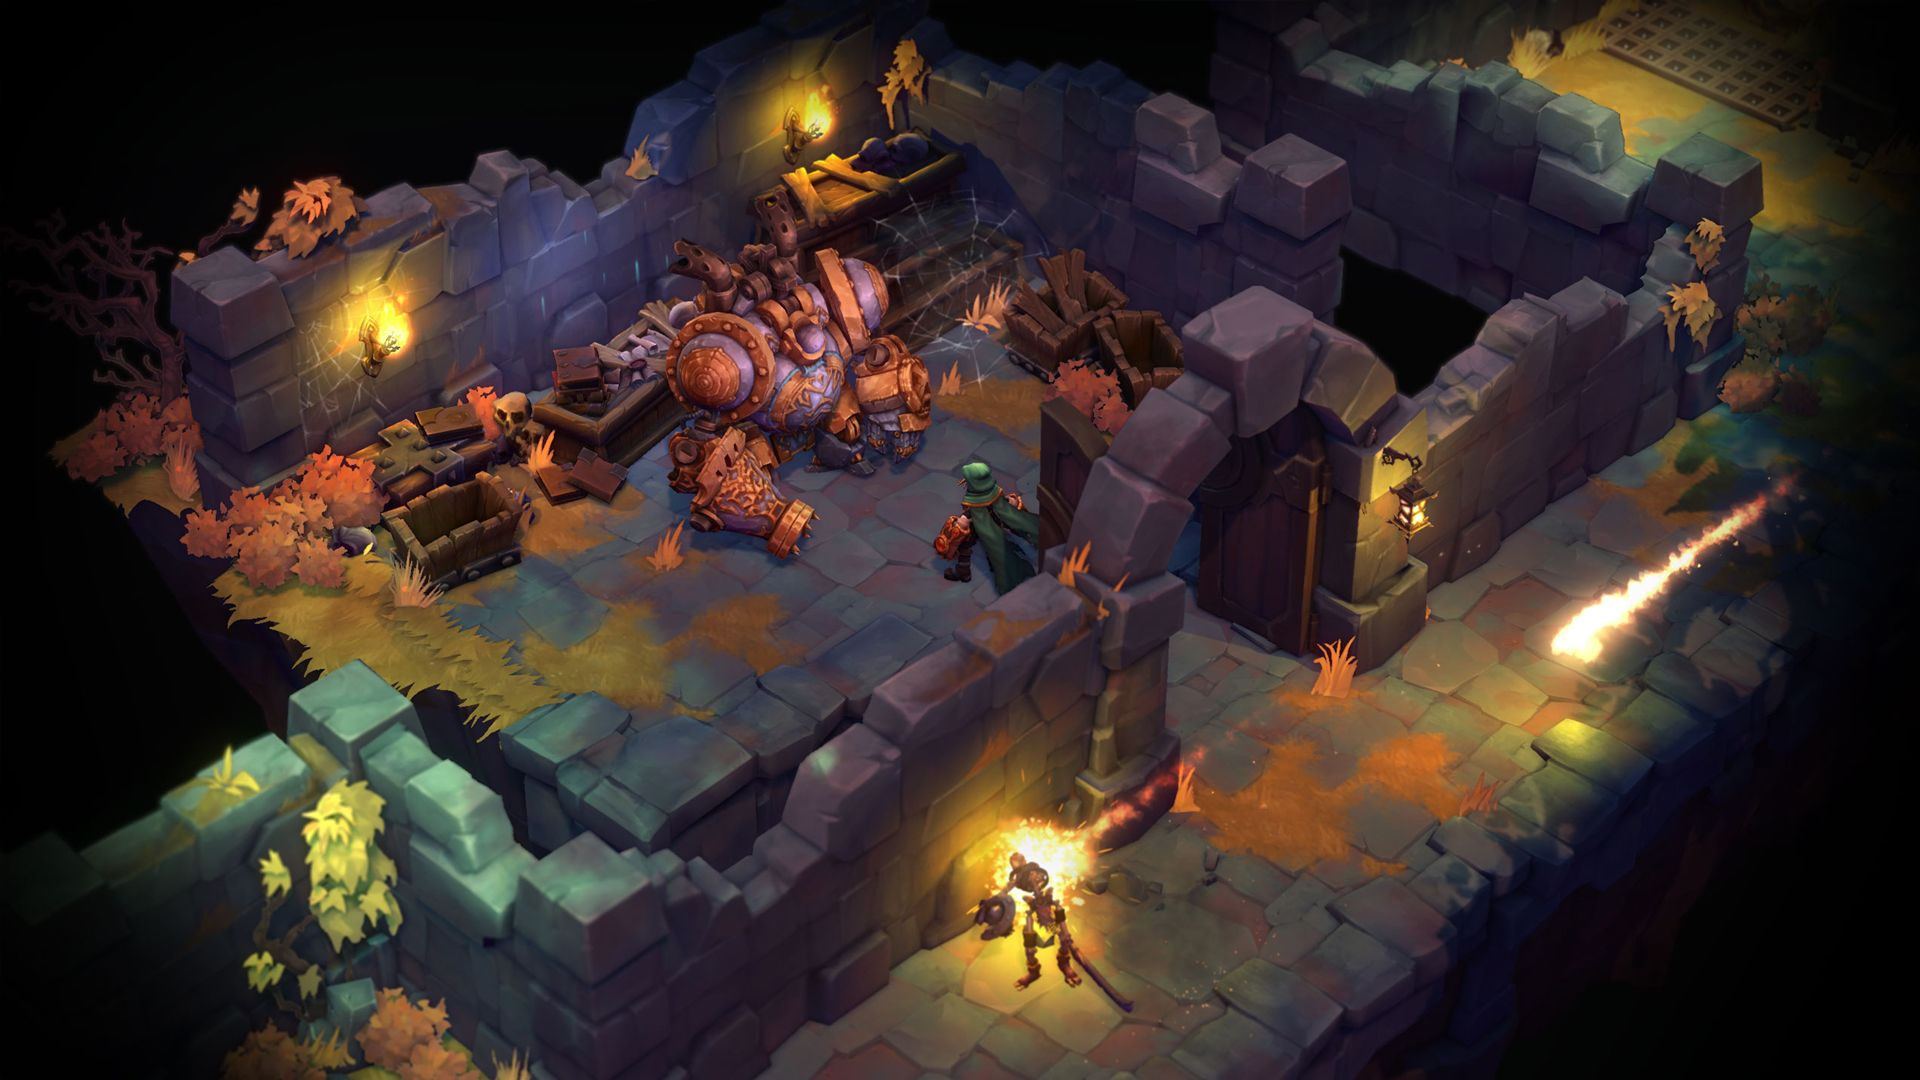 battle chasers game - Google Search